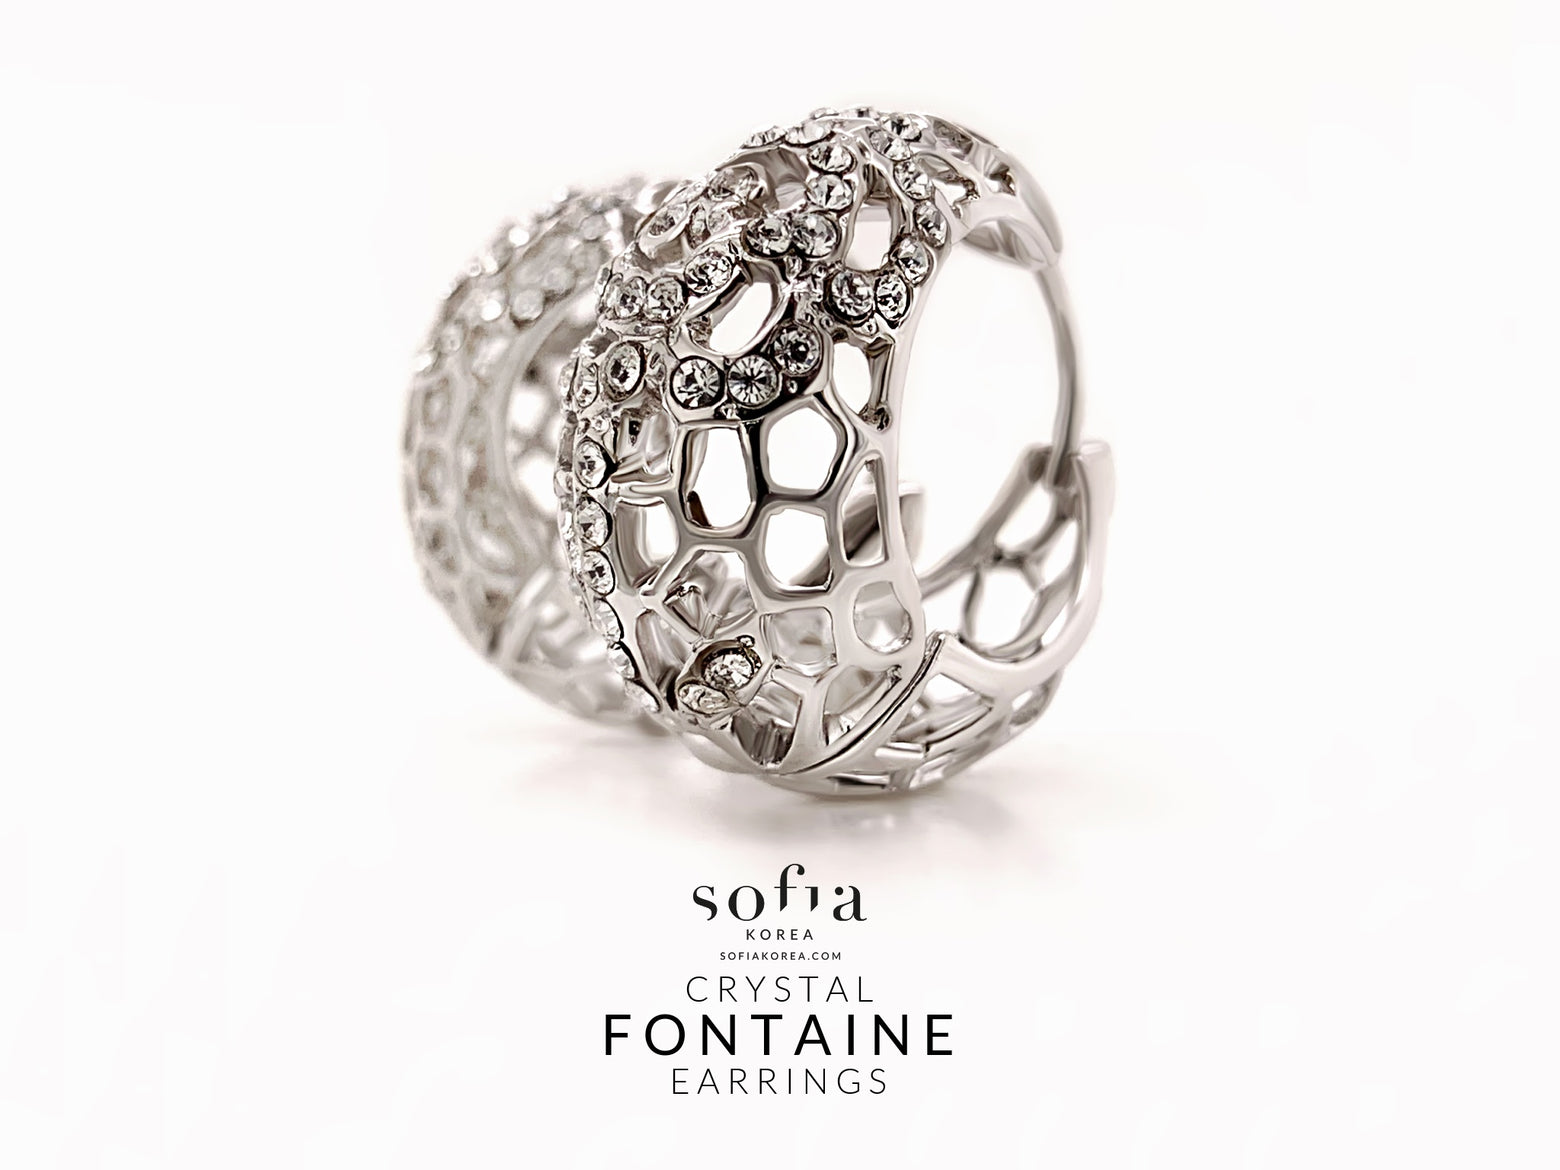 Fontaine Earrings - Sofiakorea